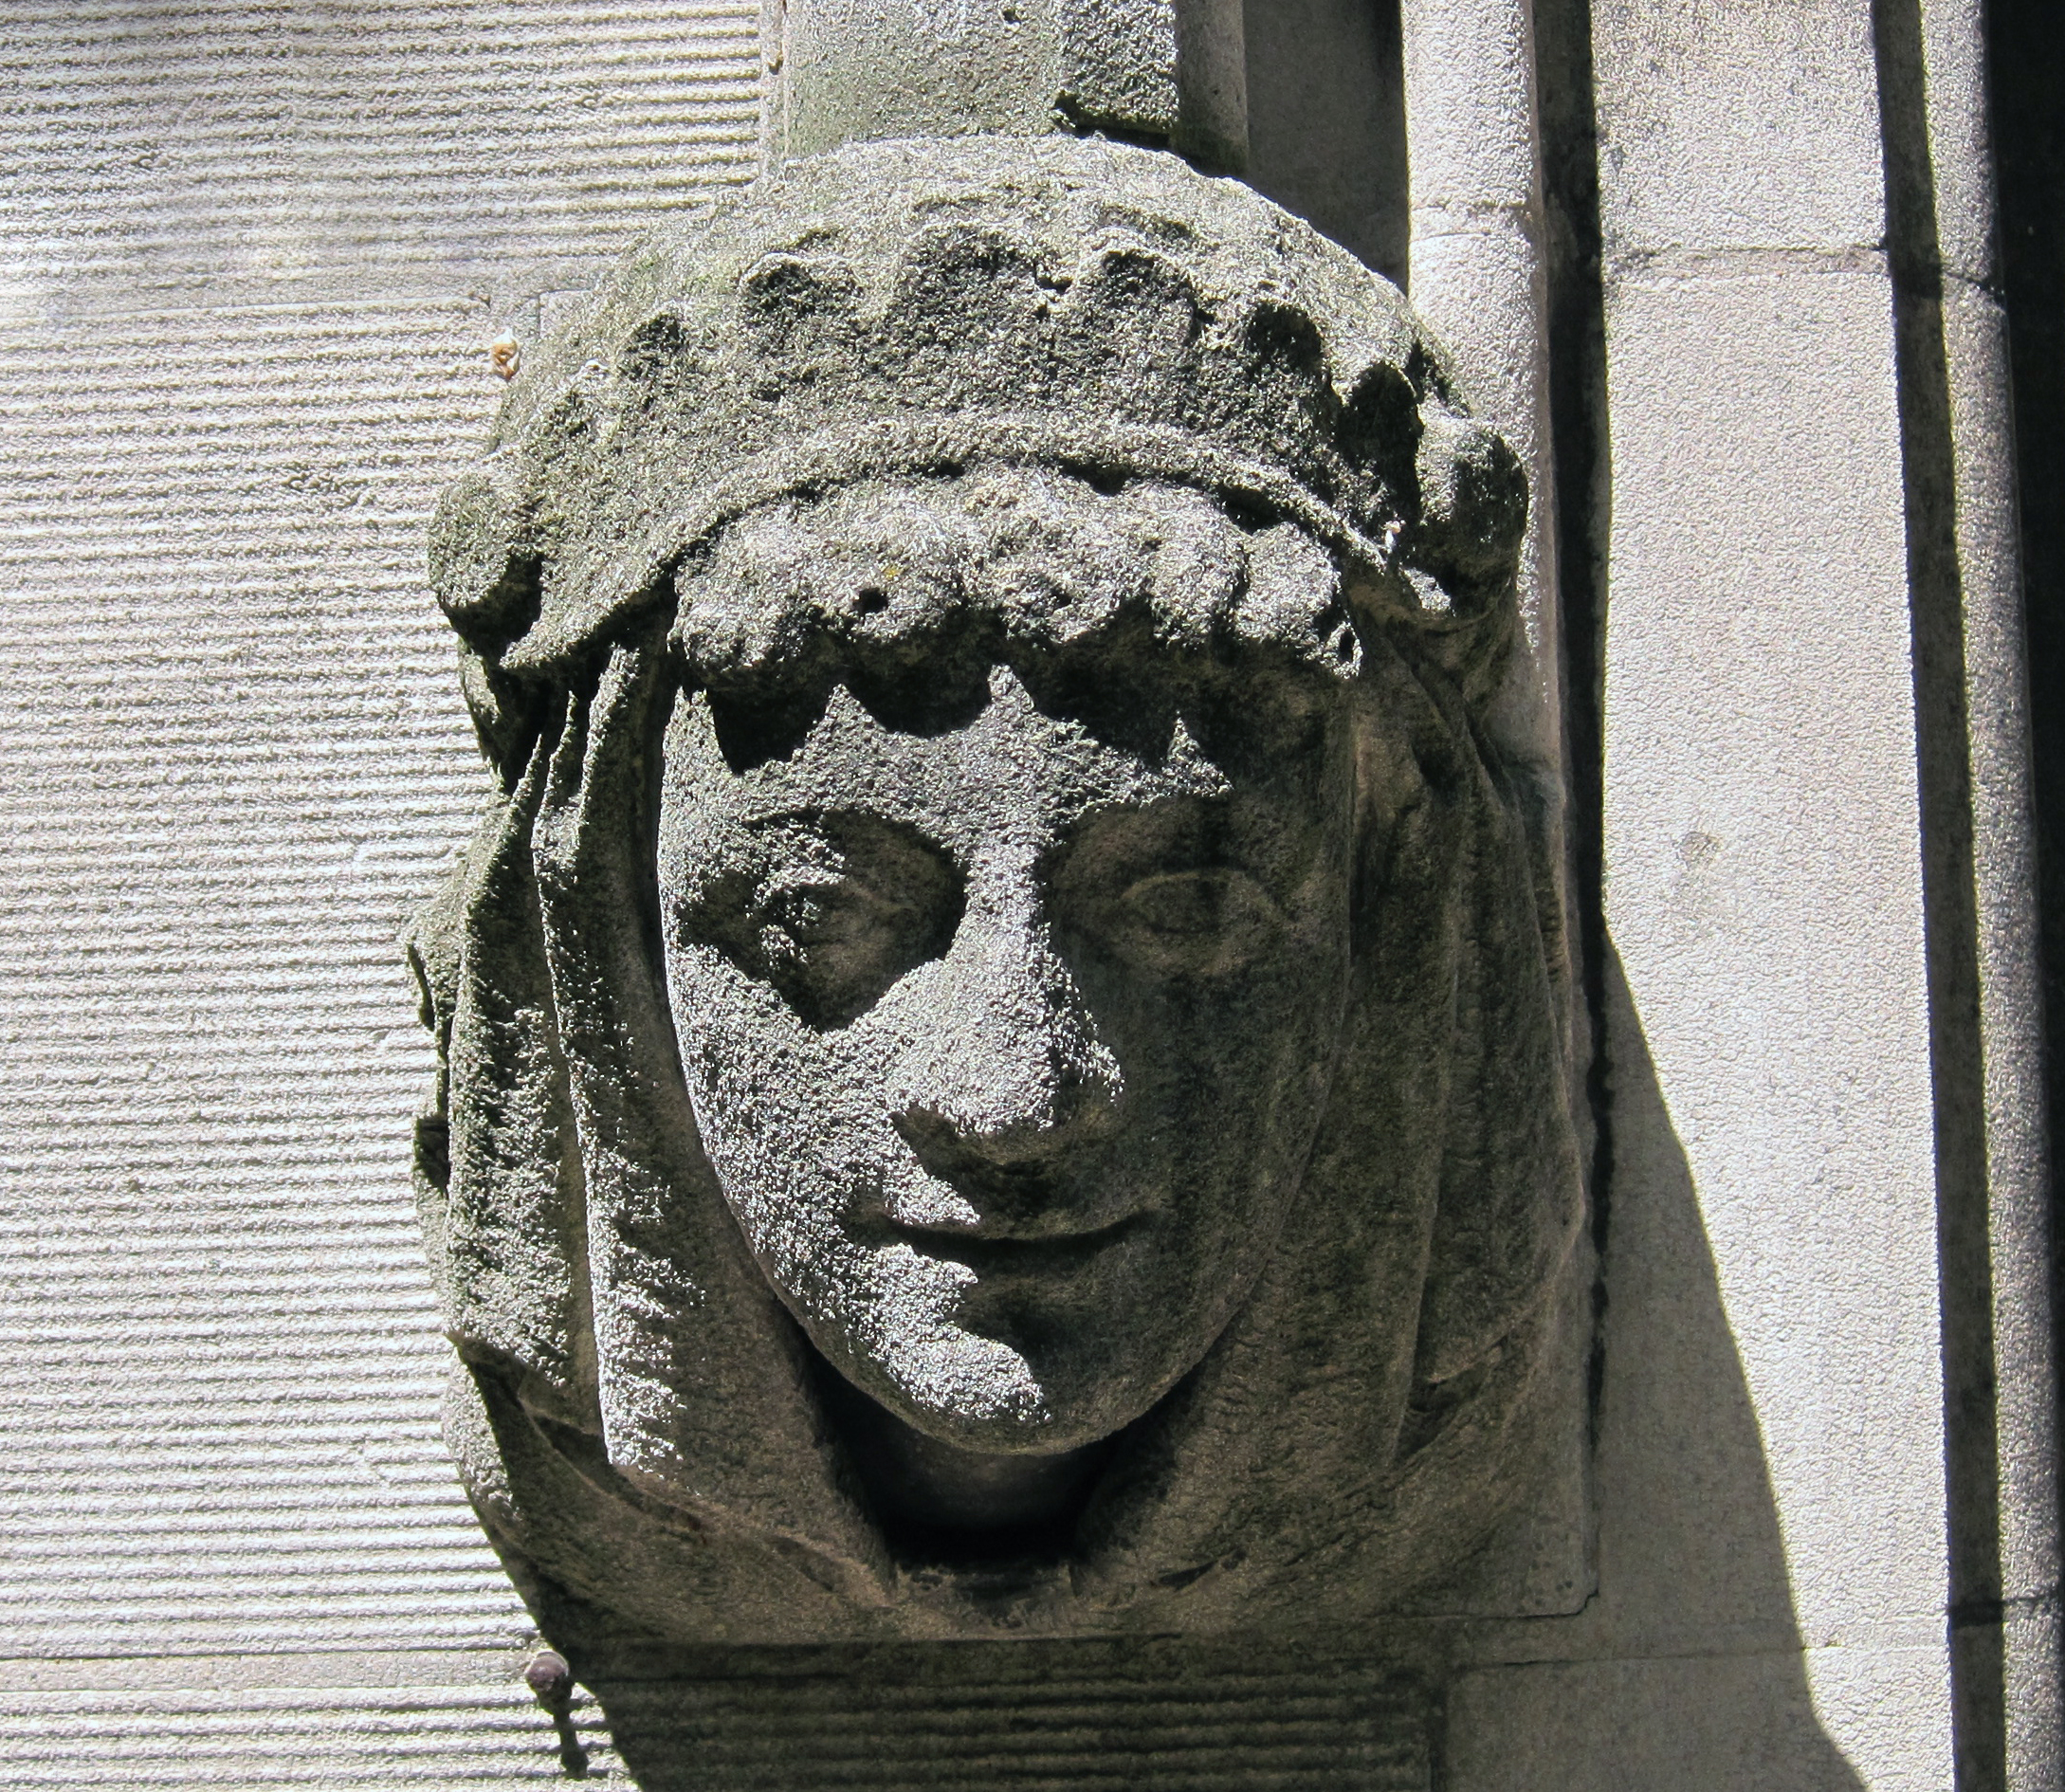 Gargoyle head - woman with crown